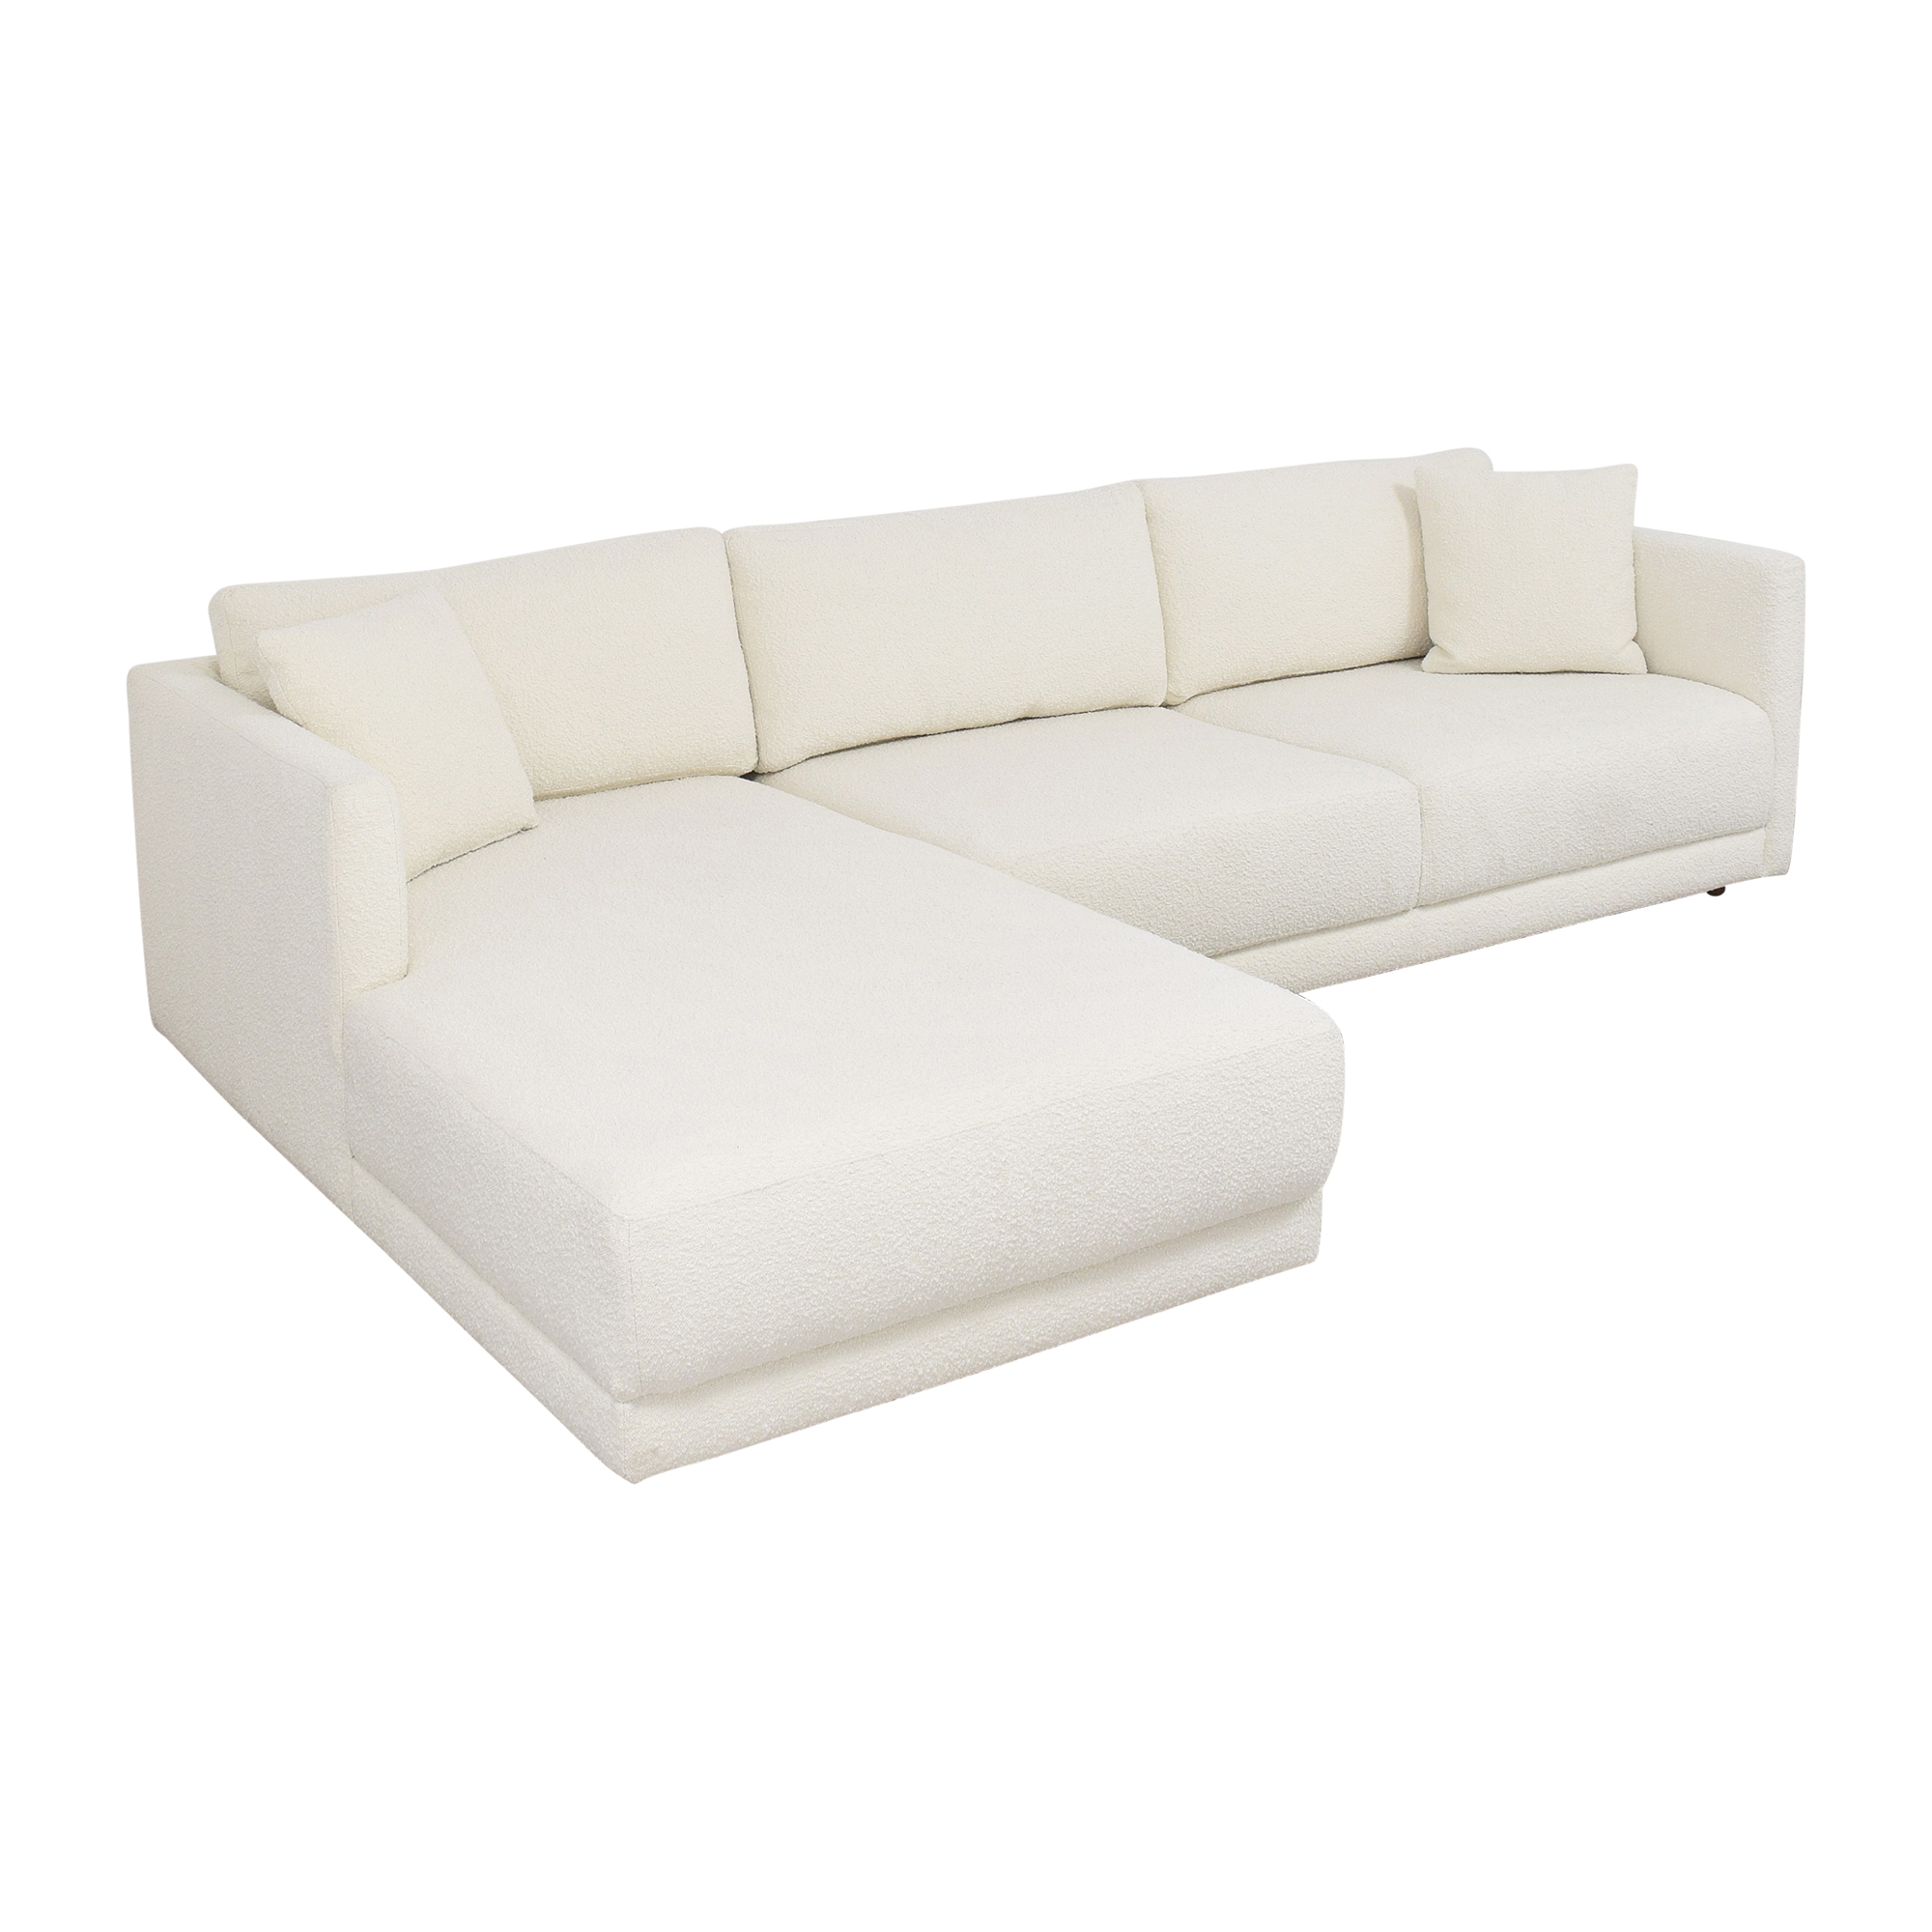 Kardiel Kardiel Domus Chaise Sectional Sofa for sale